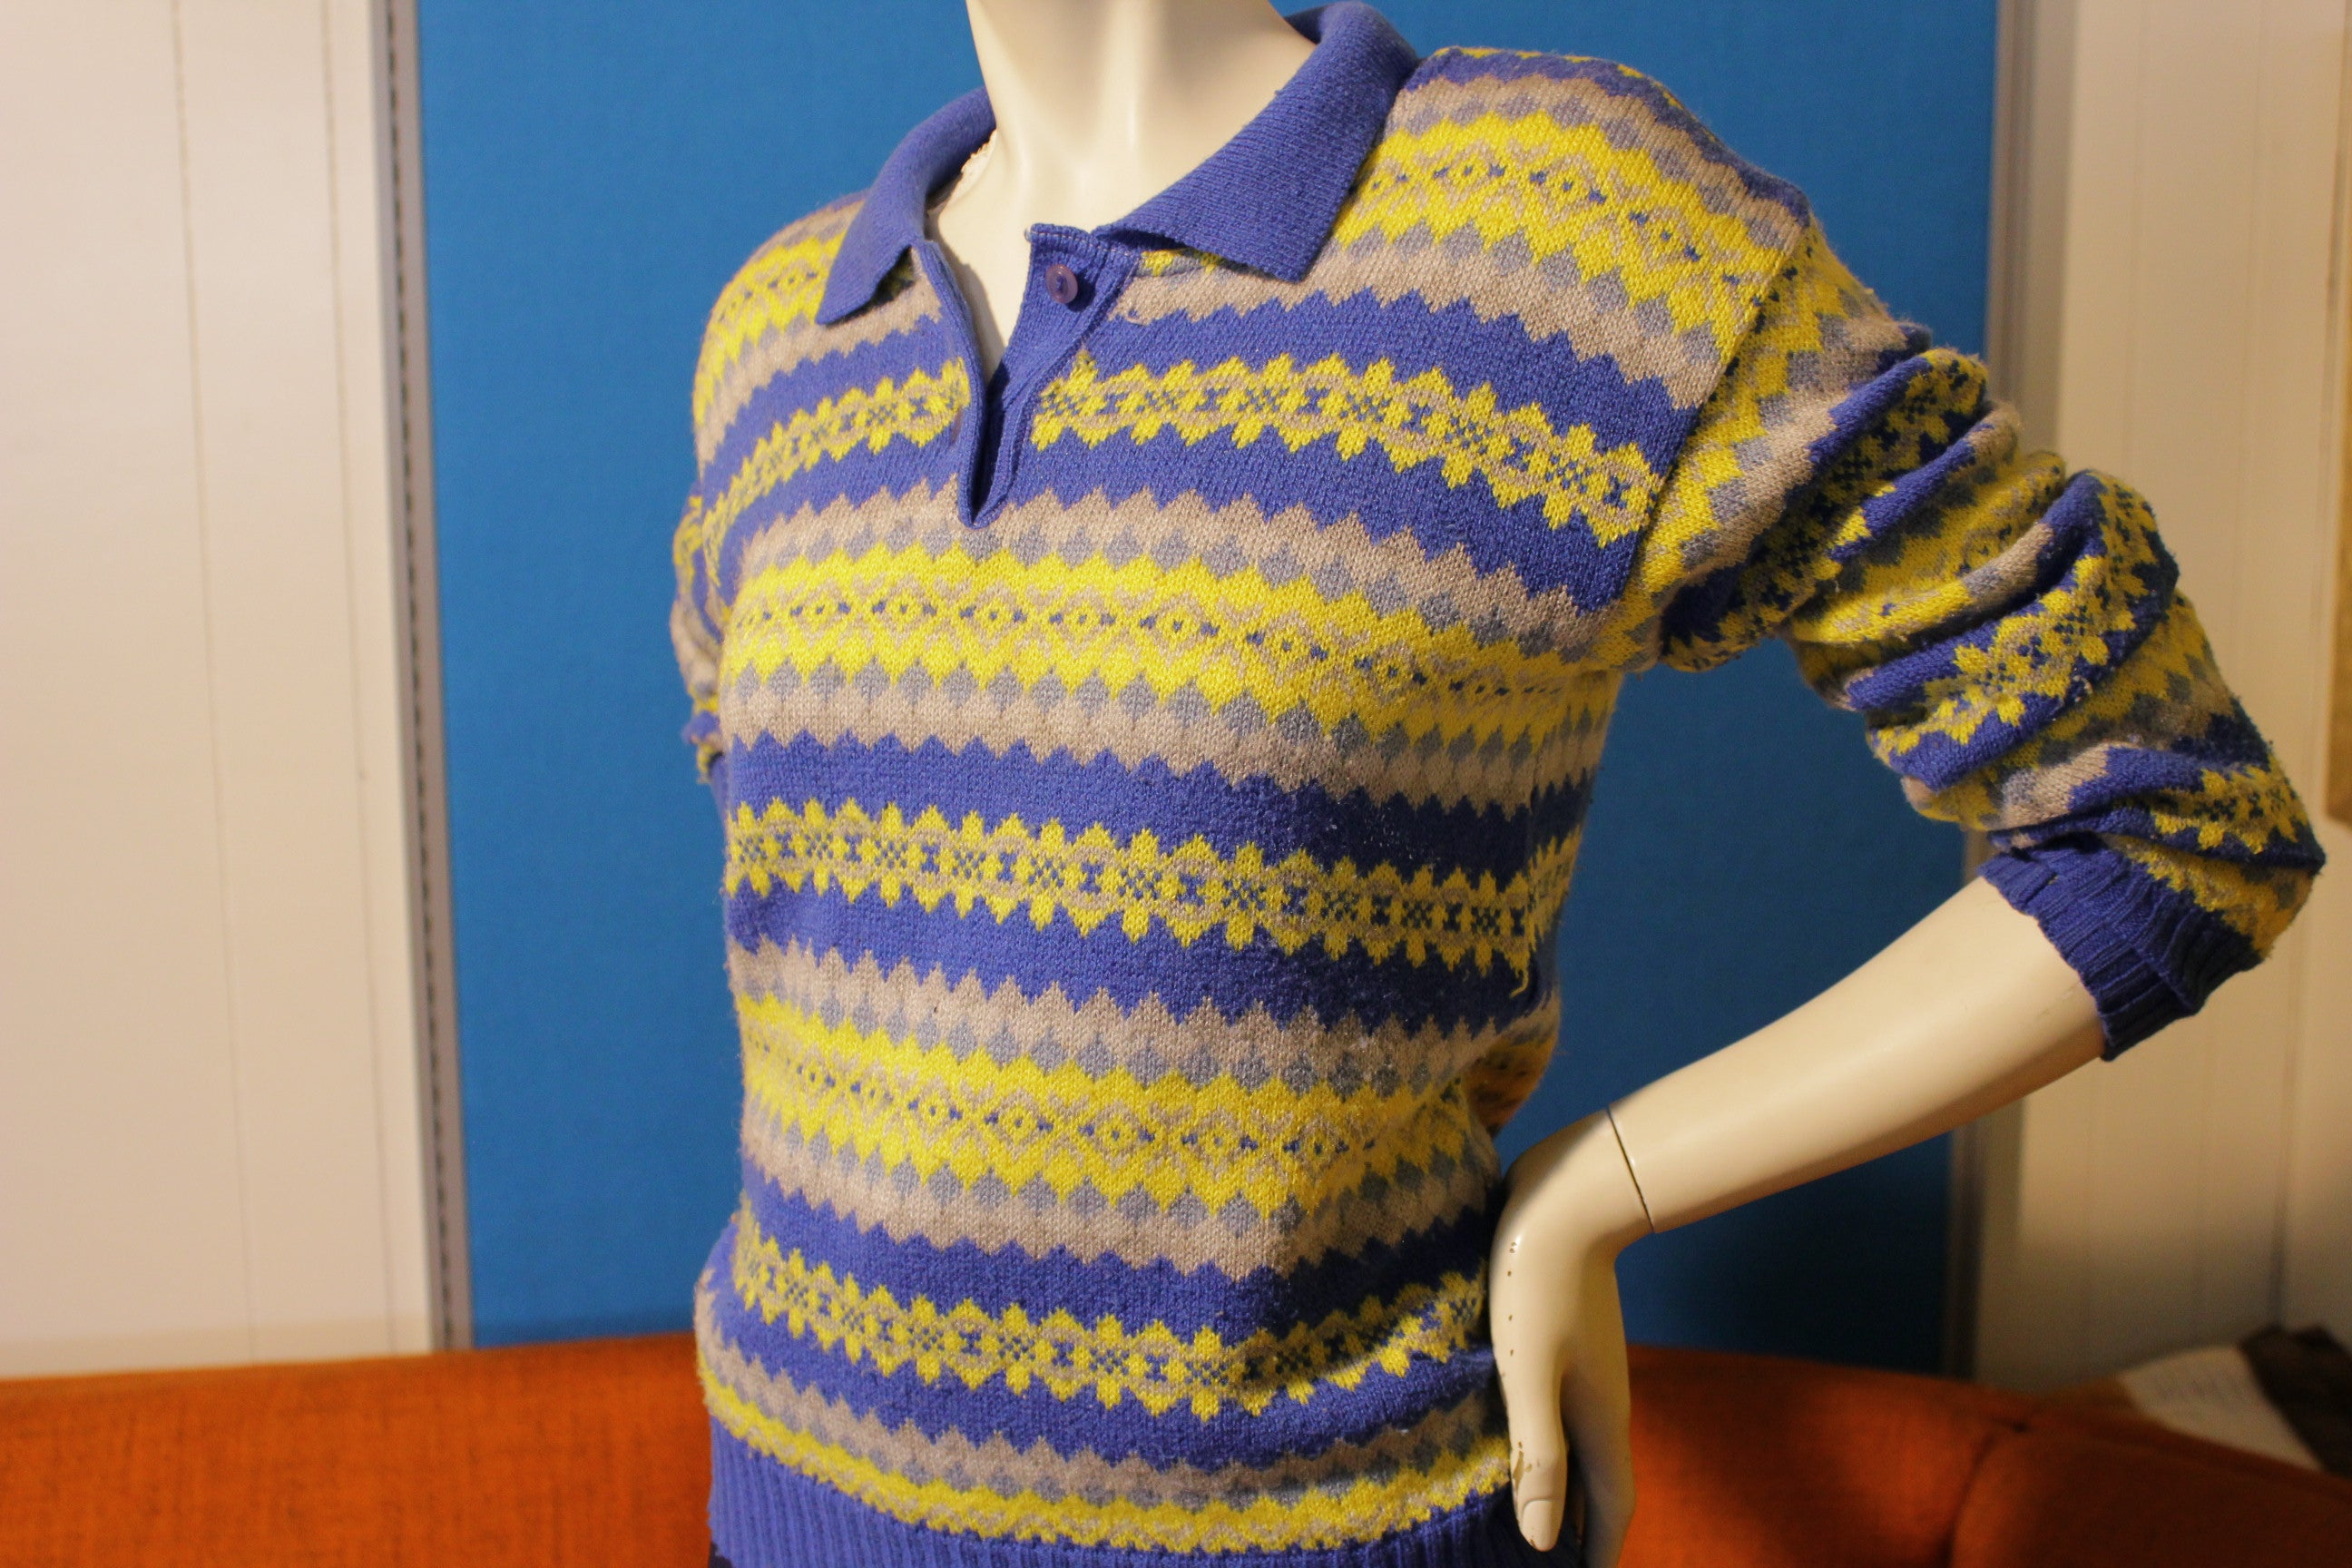 Vintage 70's Blue Yellow Polo Knit Sweater. Striped Women's Long Sleeve Top.